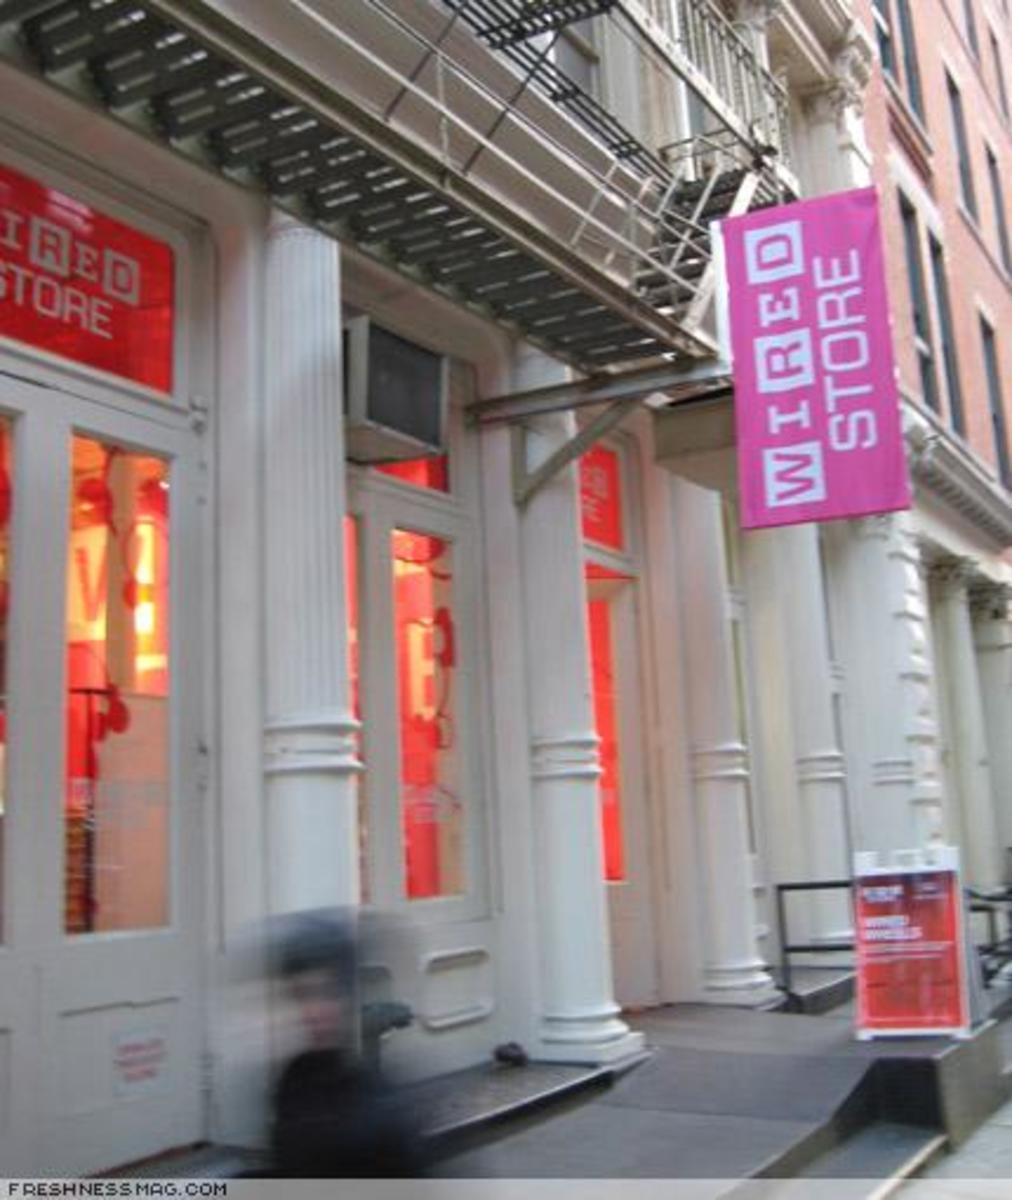 WIRED STORE 2007 - 0